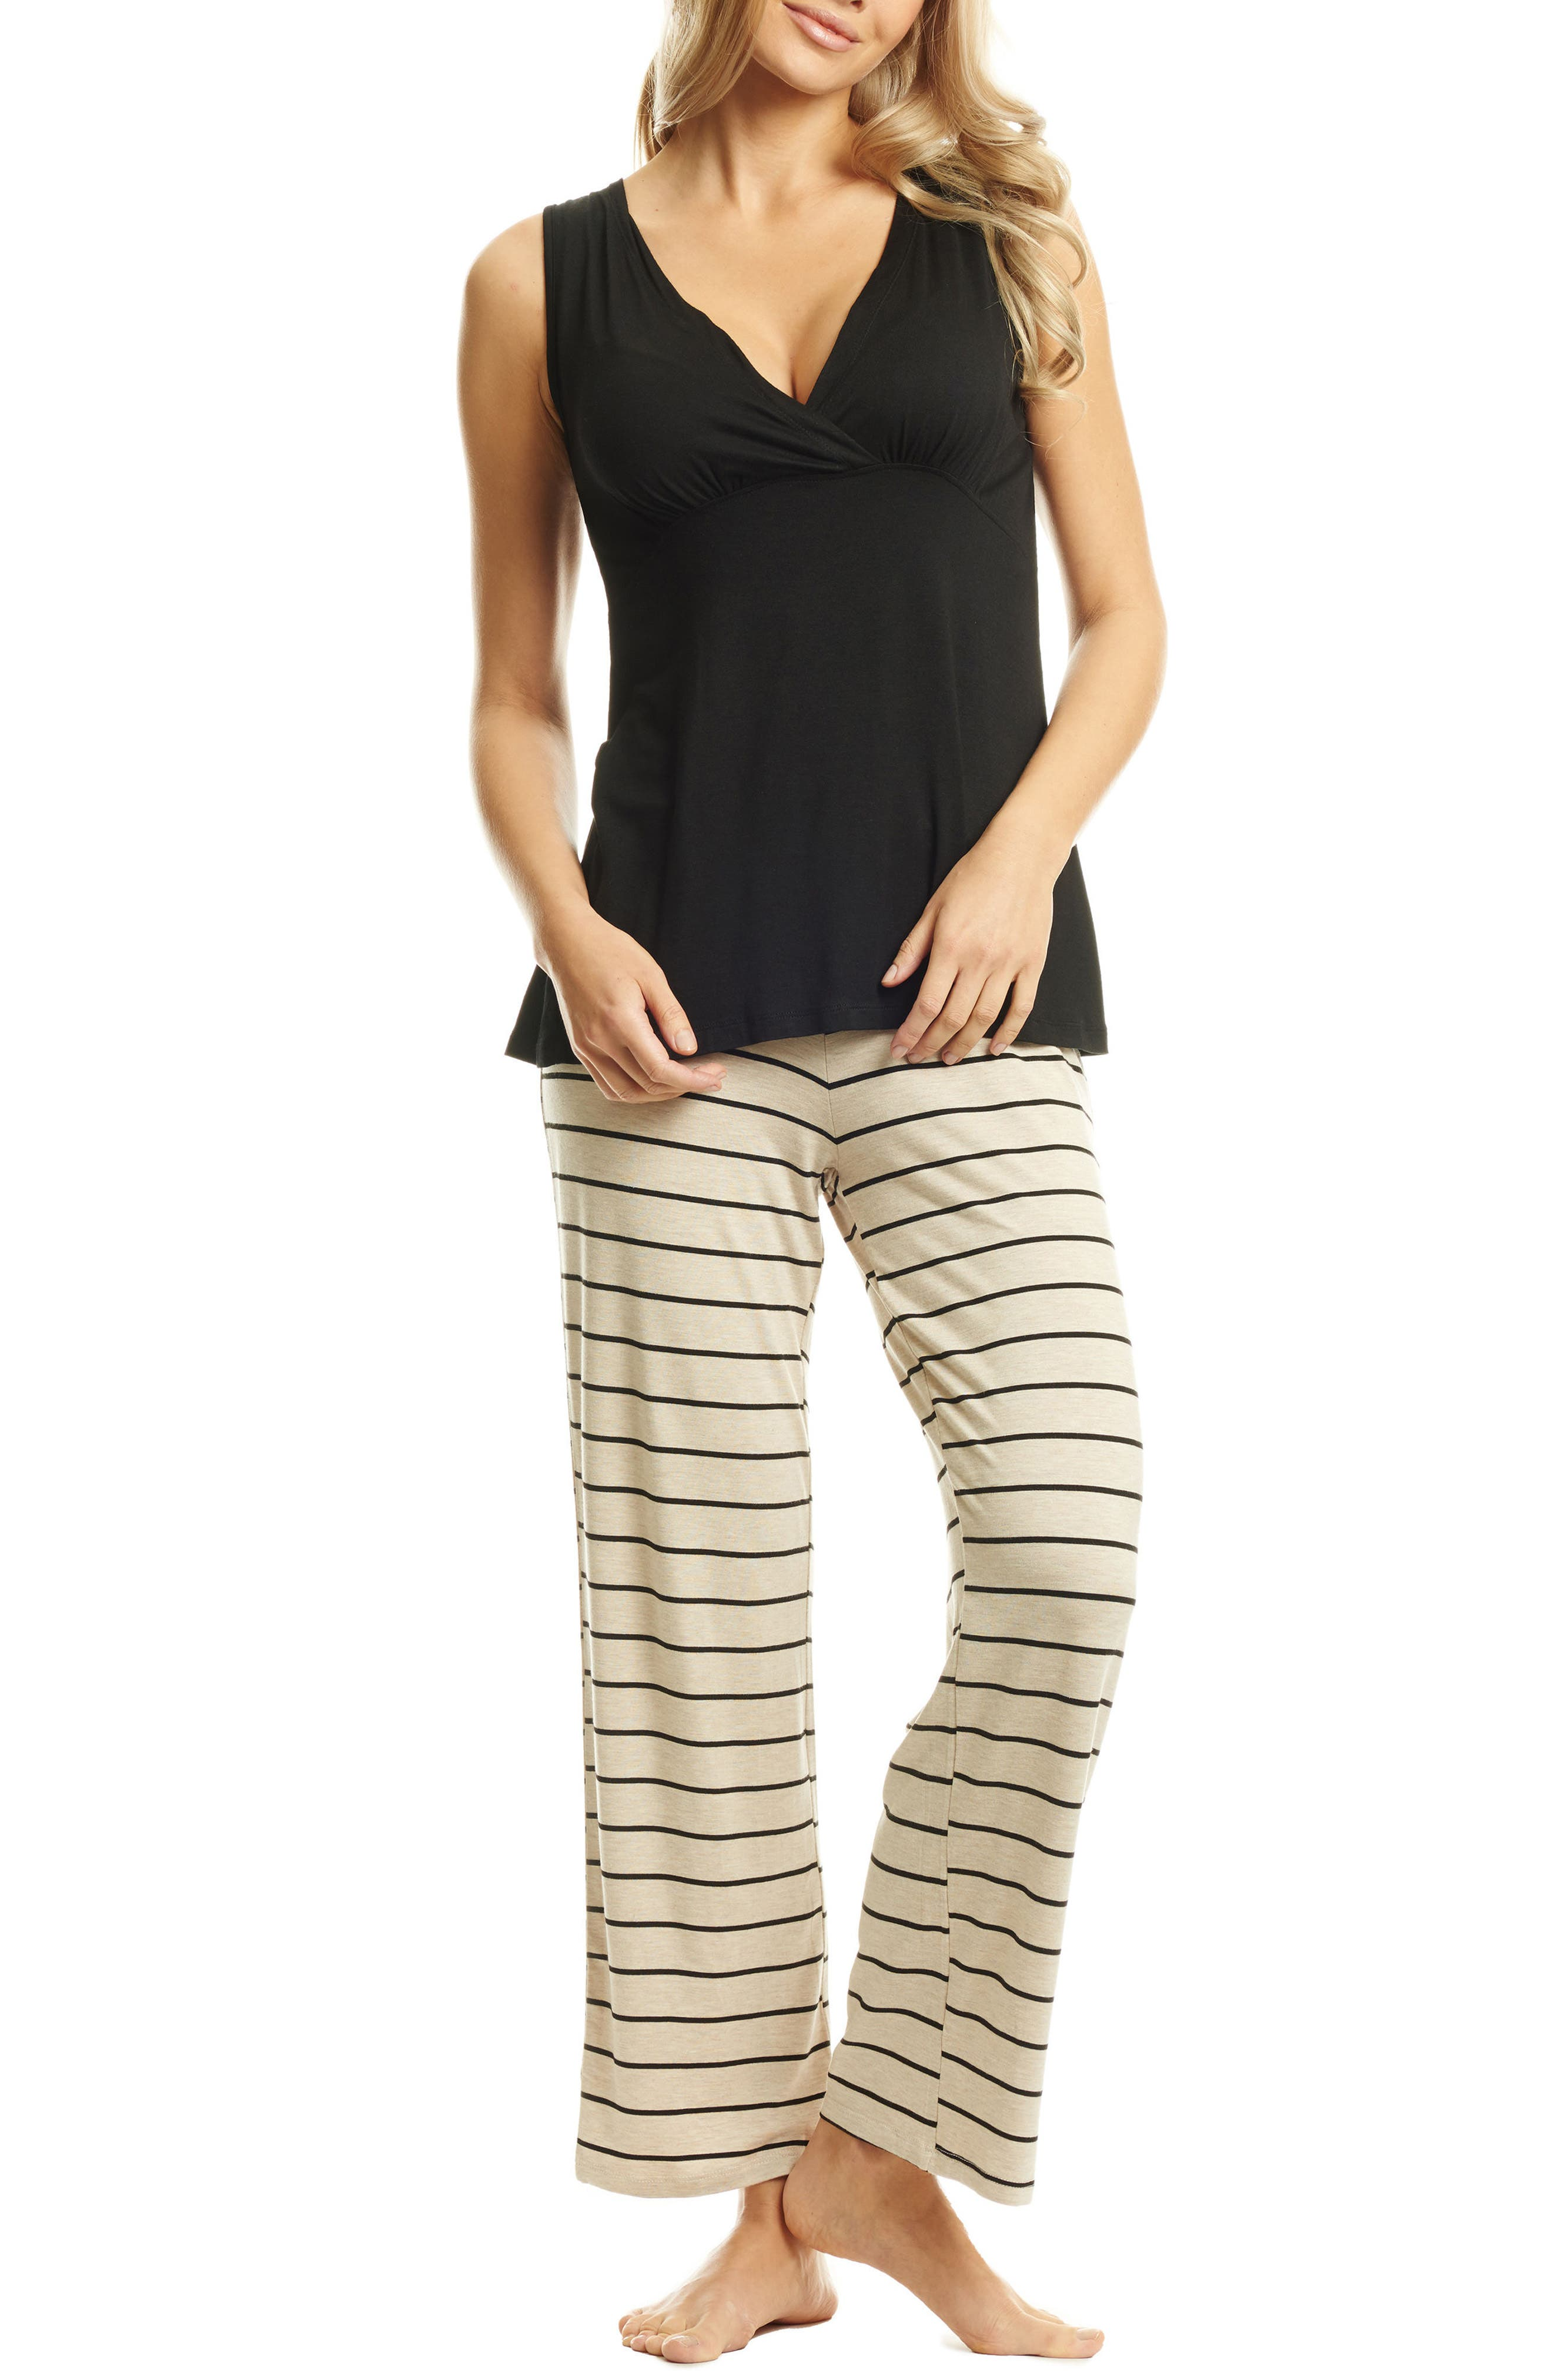 Roxanne - During & After 5-Piece Maternity Sleepwear Set,                             Main thumbnail 1, color,                             SAND STRIPE